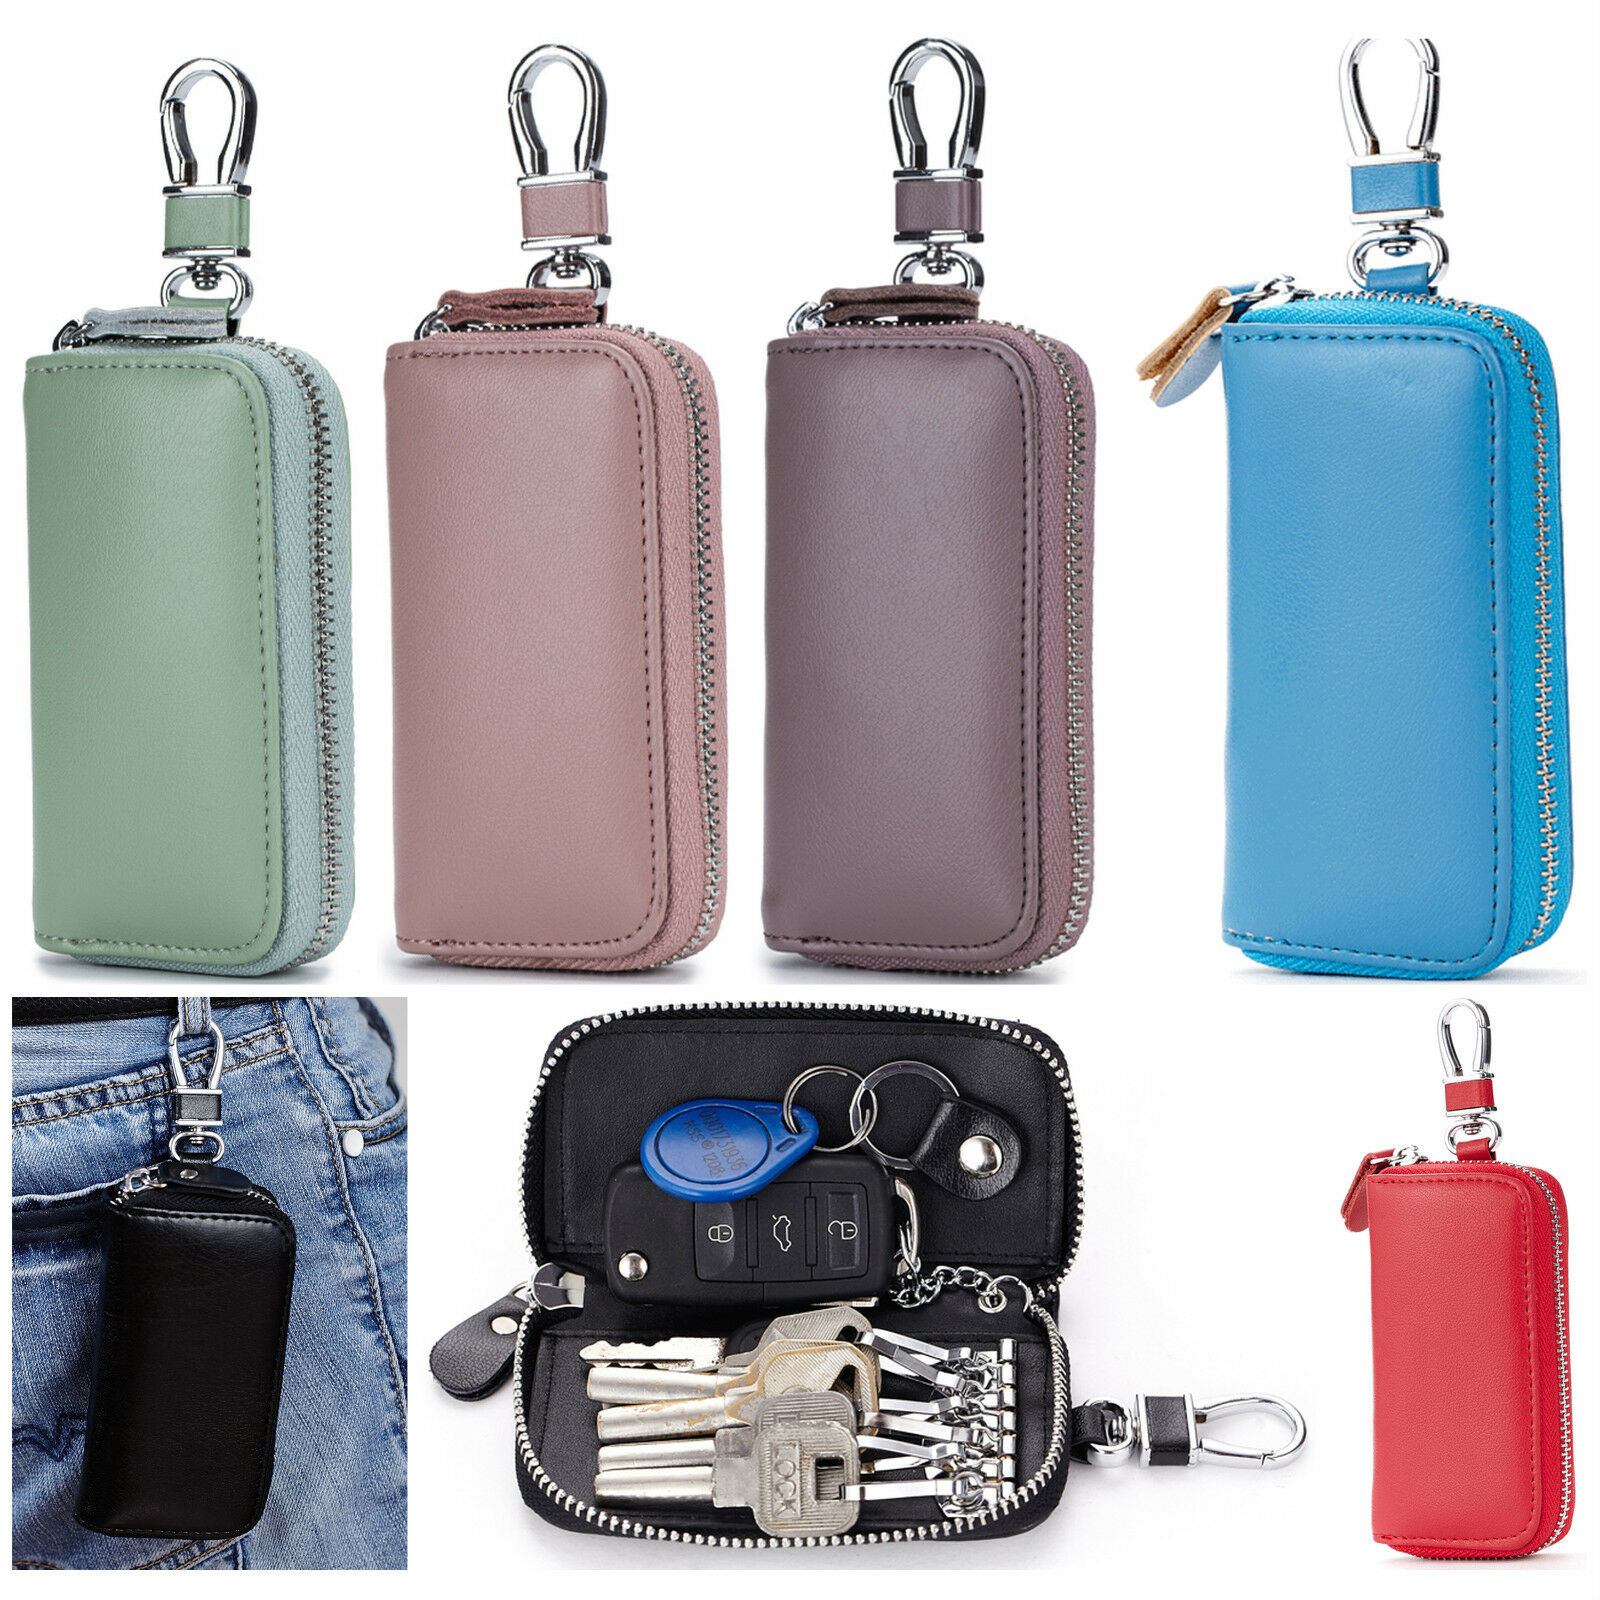 Universal Leather Car Key Zipper Case Pouch with Key Ring and Credit Card Slots Clothing, Shoes & Accessories